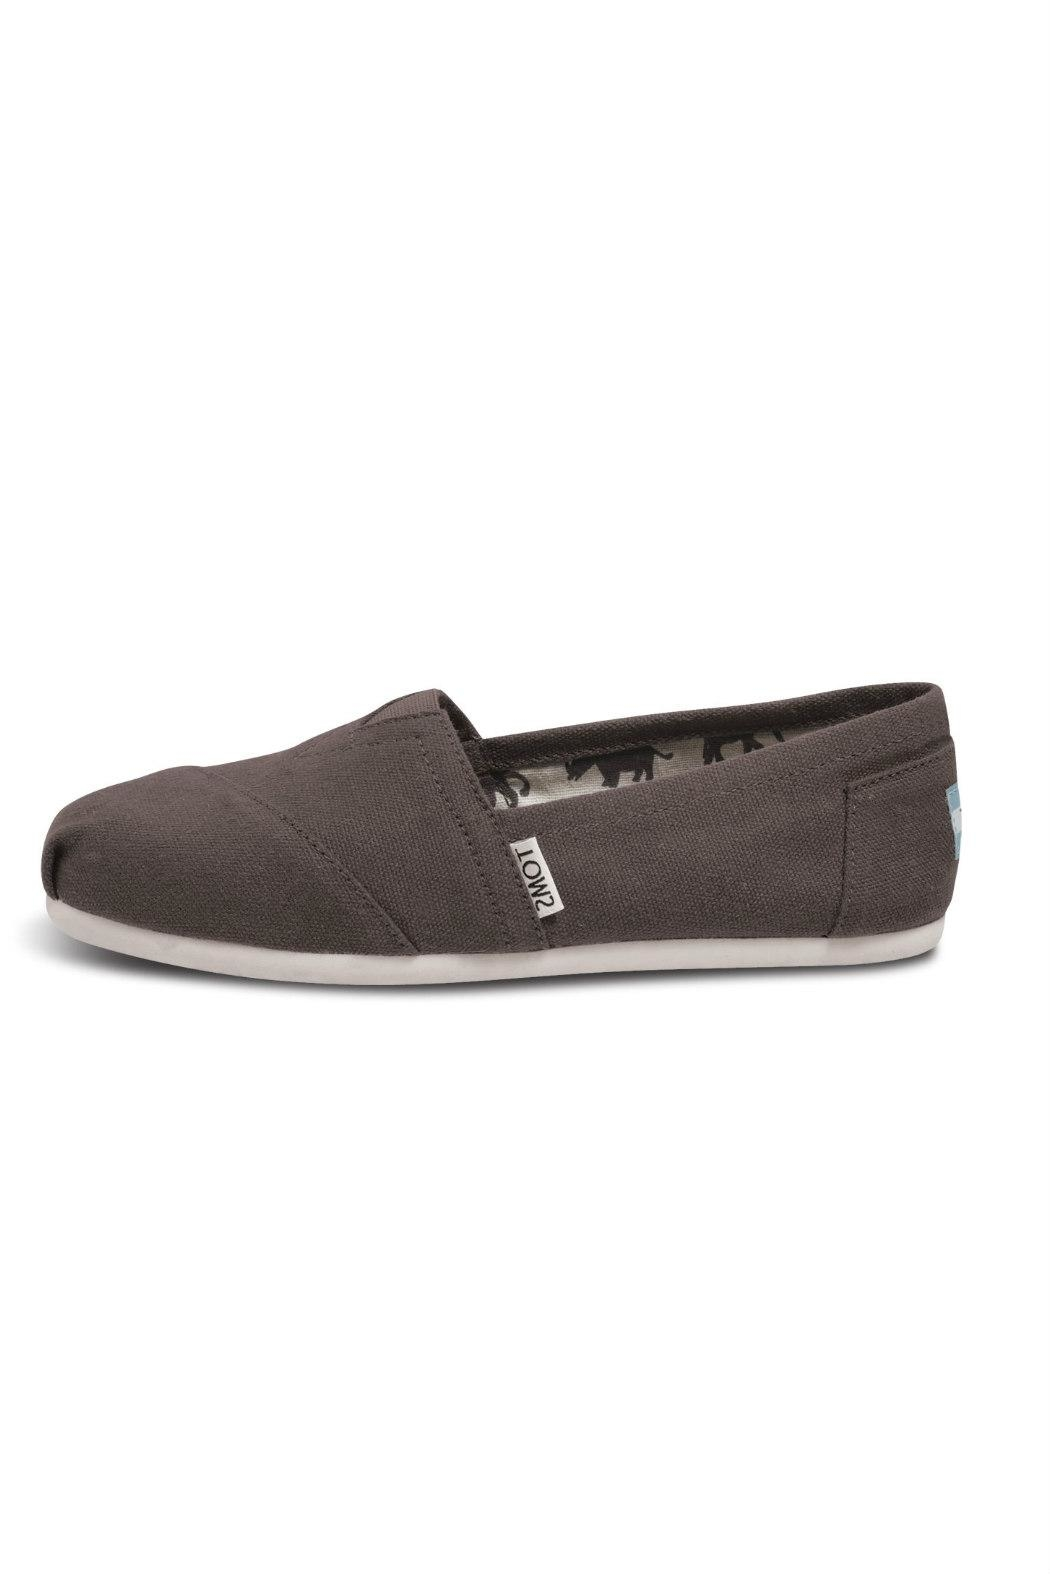 TOMS Grey Canvas Alpergata Shoes - Front Cropped Image